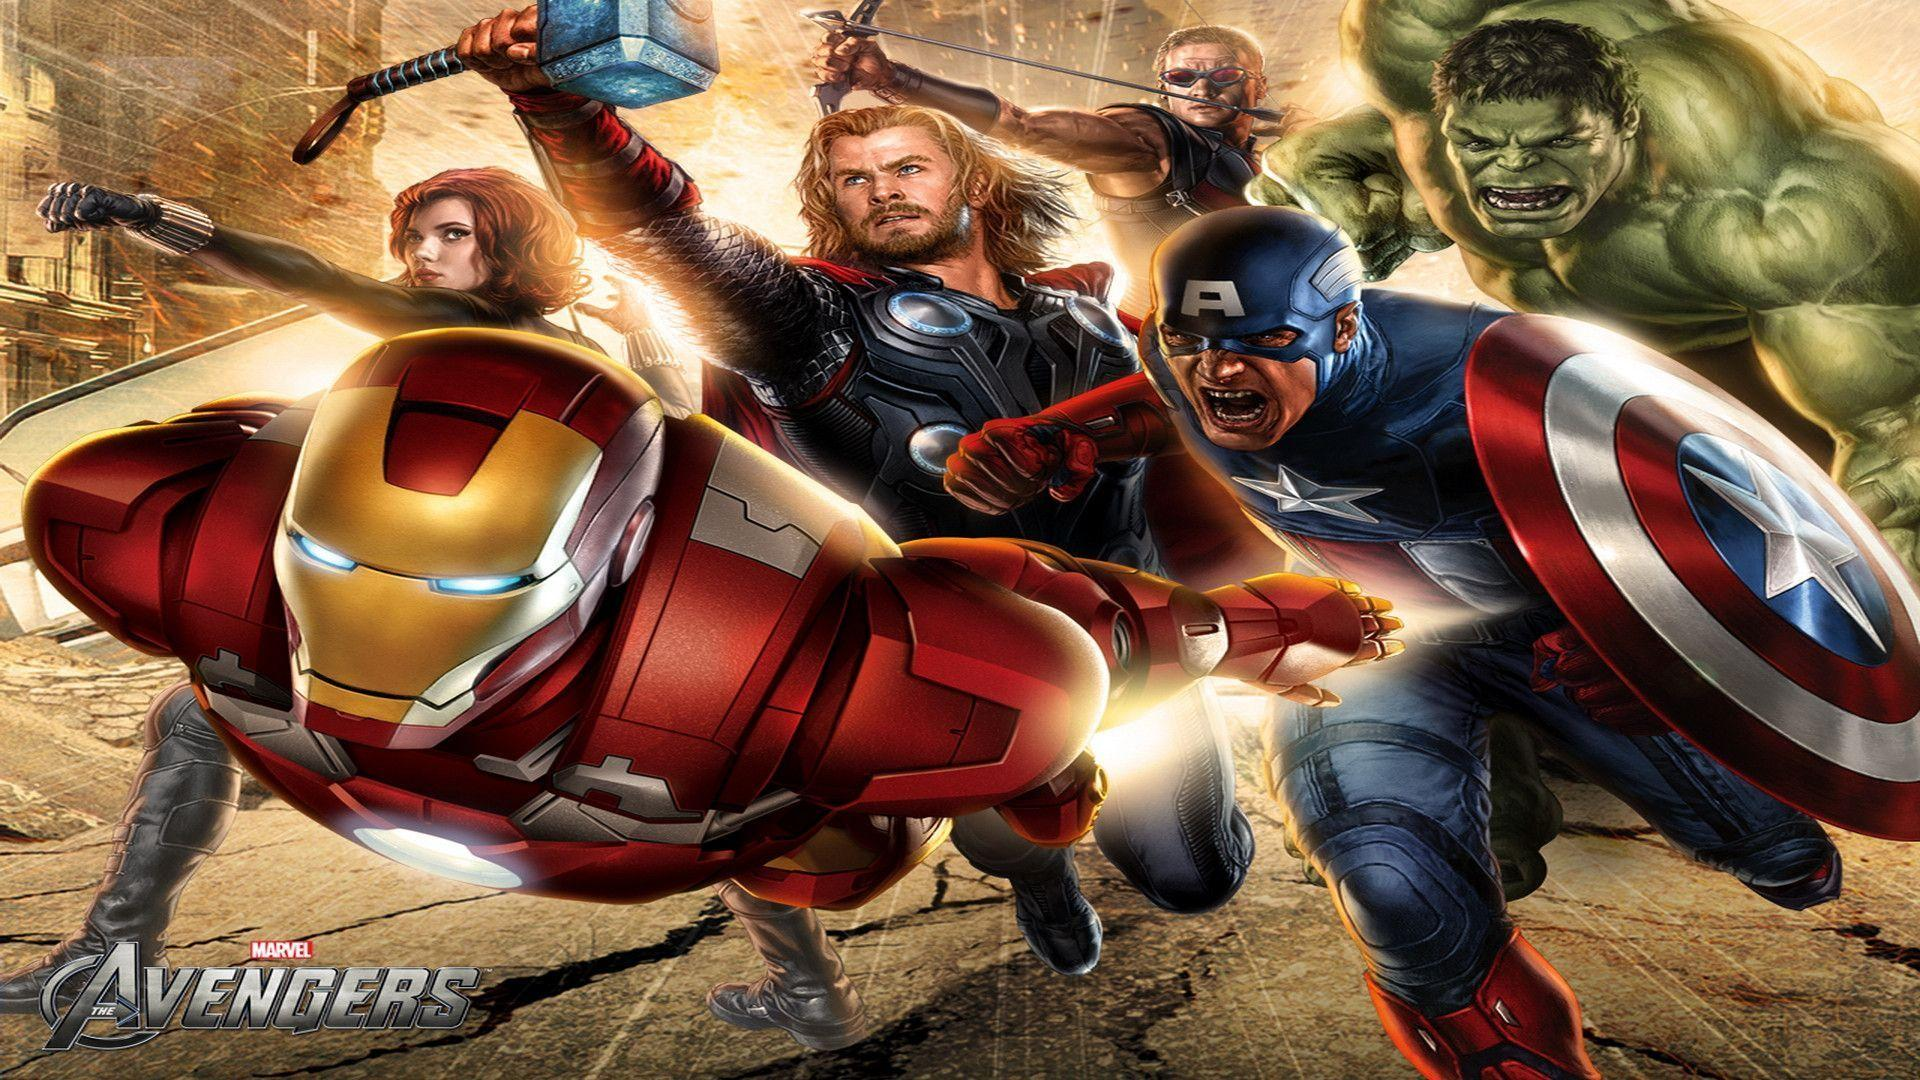 Wallpapers For > Avengers Wallpapers Hd 1080p